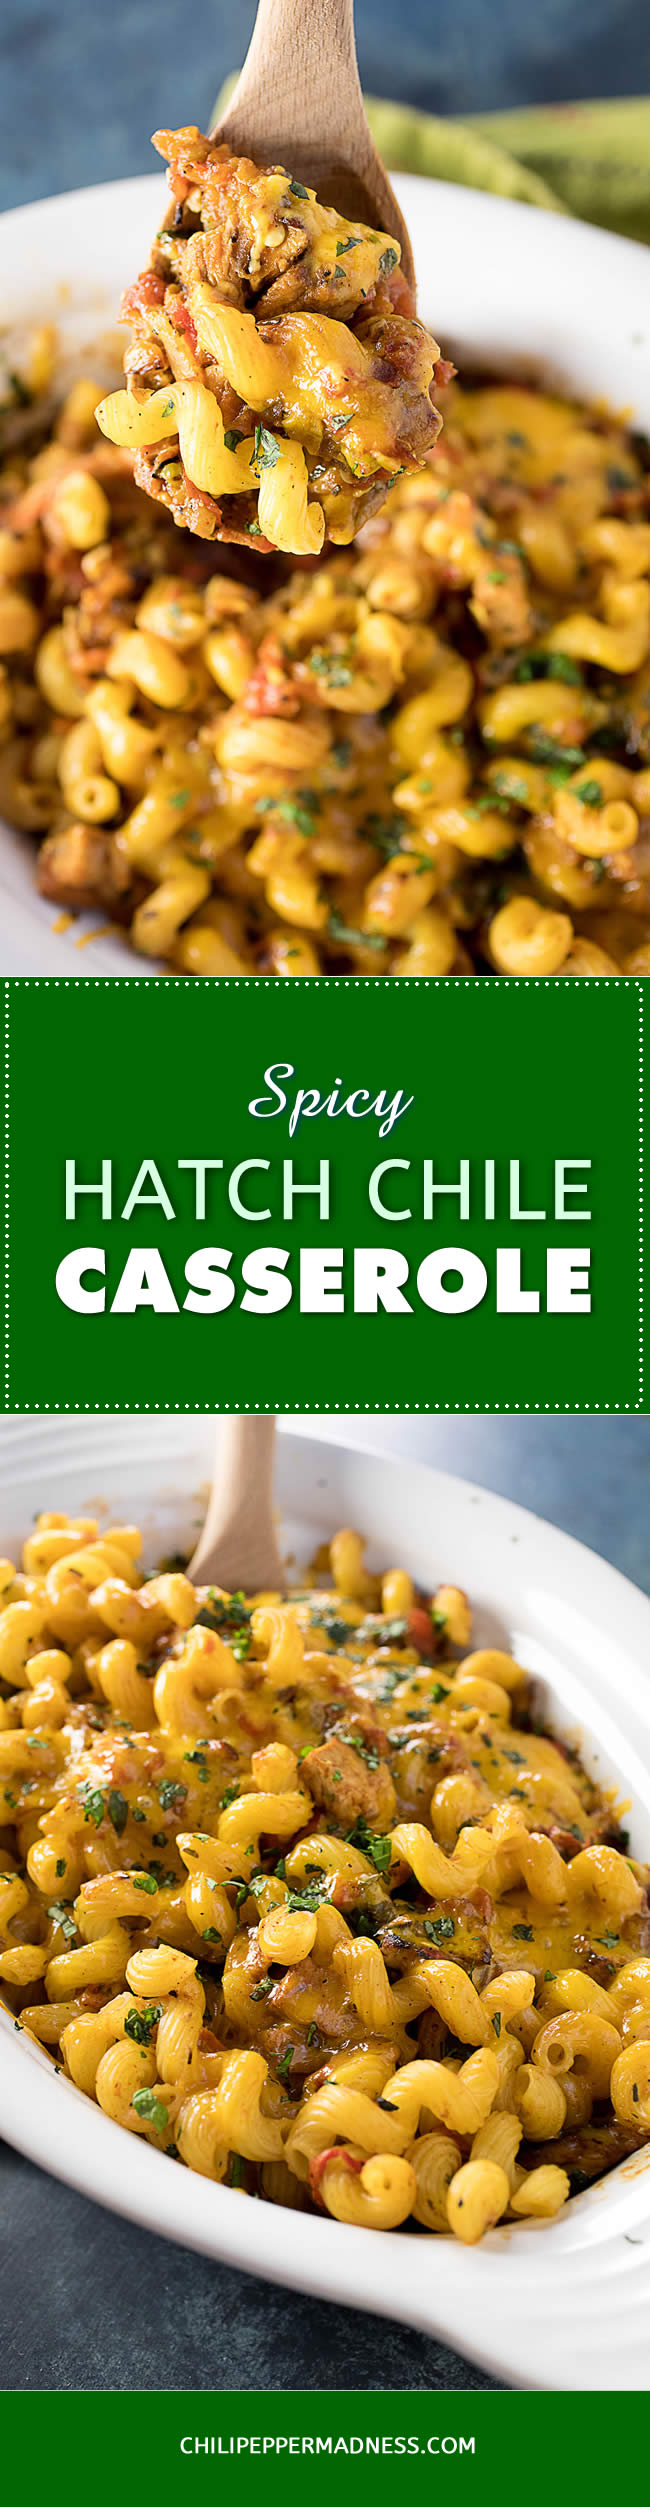 Spicy Pork-Hatch Chili Casserole - Recipe